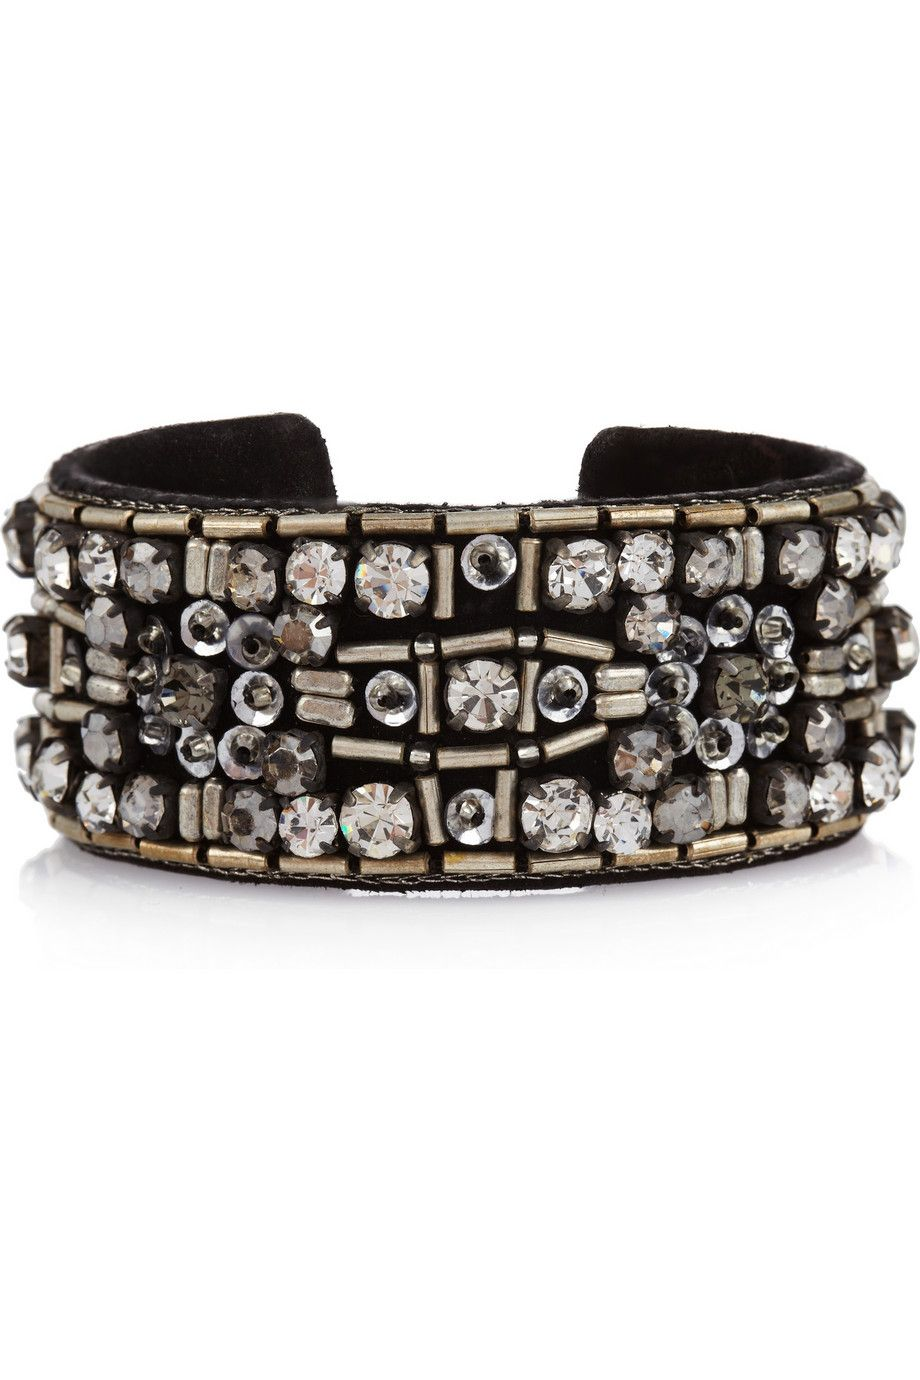 Isabel marant sunny girl crystal and beadembellished suede cuff